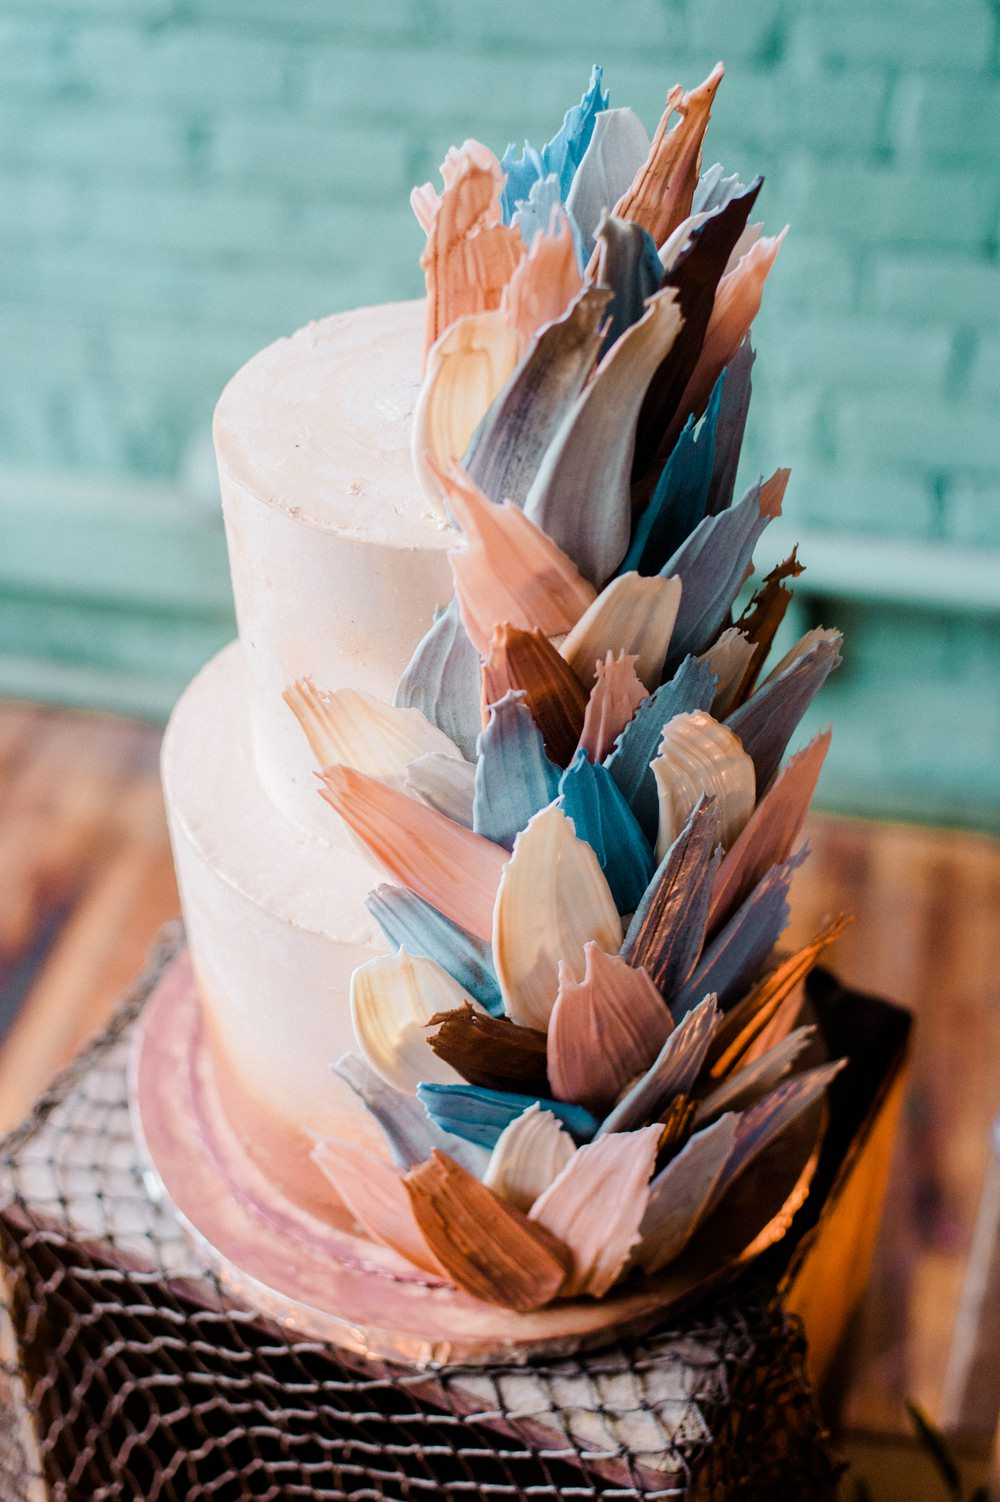 Nature Inspired Styled Shoot Seashell Grey Blue Coral Brushstroke Cake Candles Driftwood Crates | Ocean Wedding Ideas Industrial Rachel Watkinson Photography